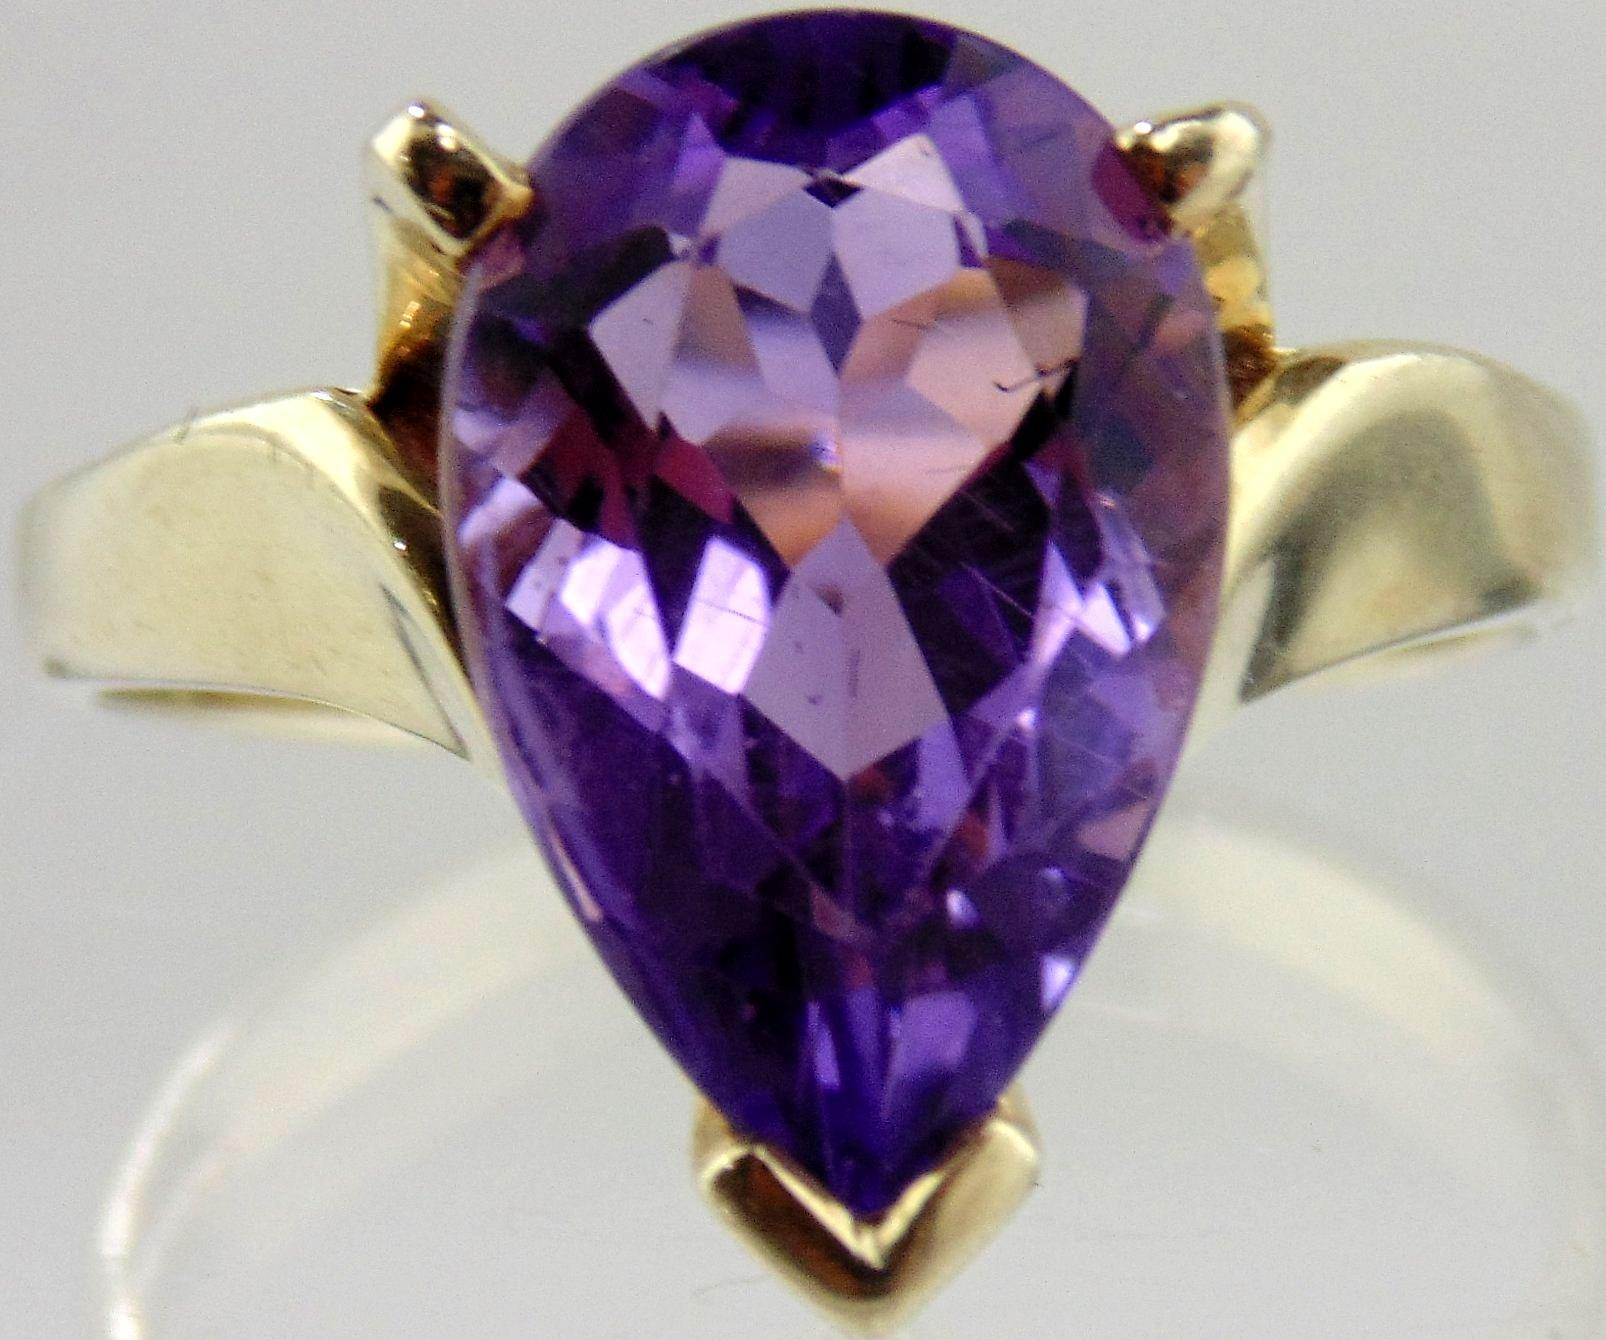 Amethyst Ring 14kt White Gold - Pear Shaped Amethyst 4.03cts